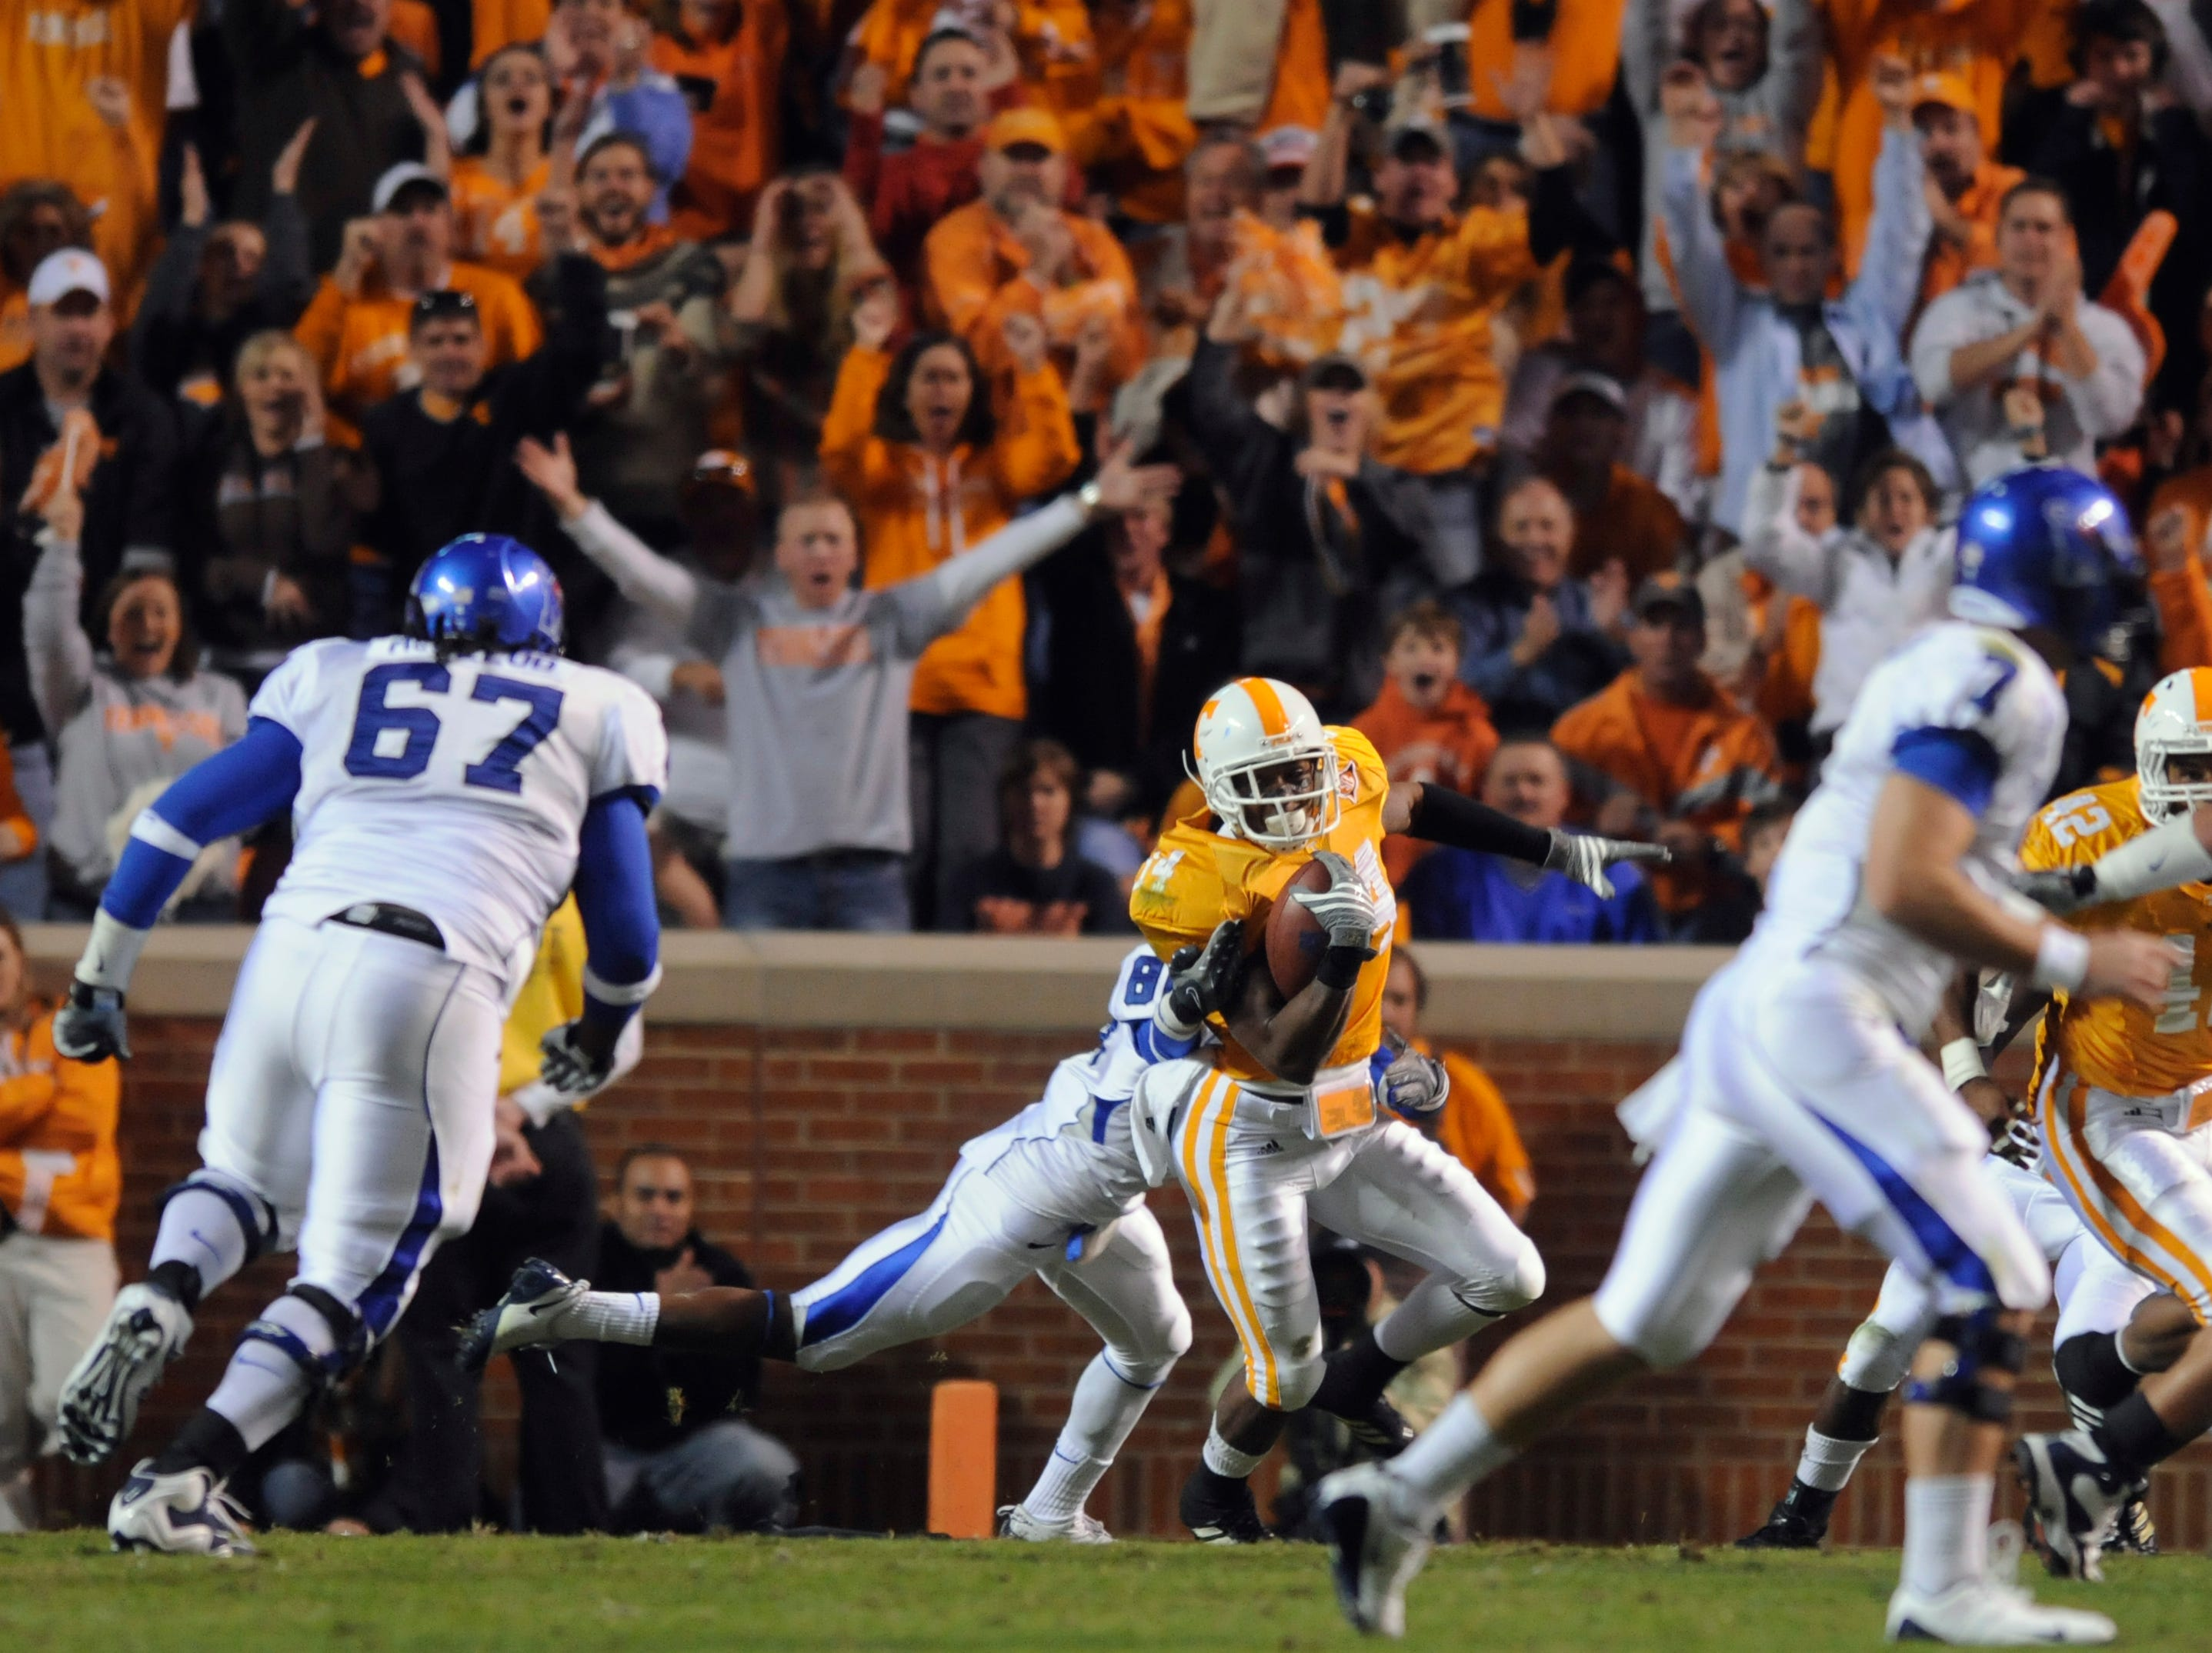 Tennessee cornerback Eric Berry (14) catches in interception from Memphis defensive back Alton Starr (7) during action Saturday, Nov 7, 2009 in Neyland Stadium in Knoxville.